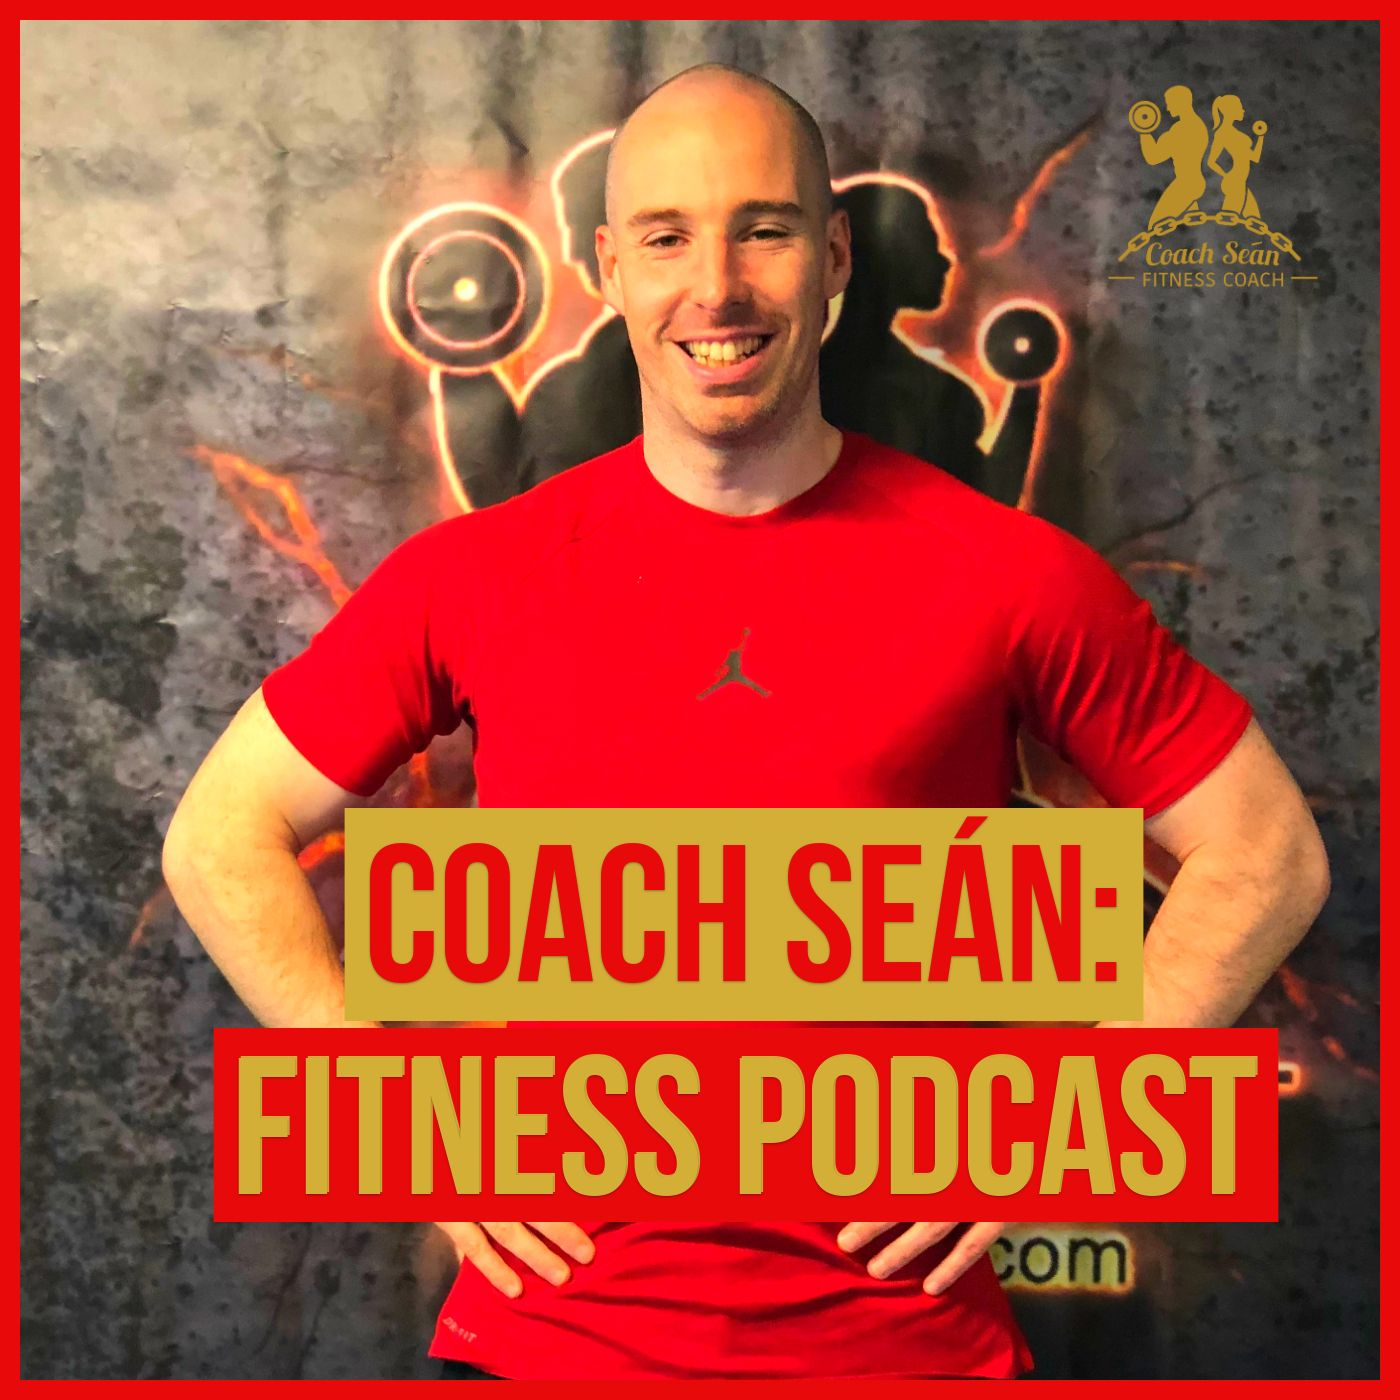 Coach Sean Fitness Podcast